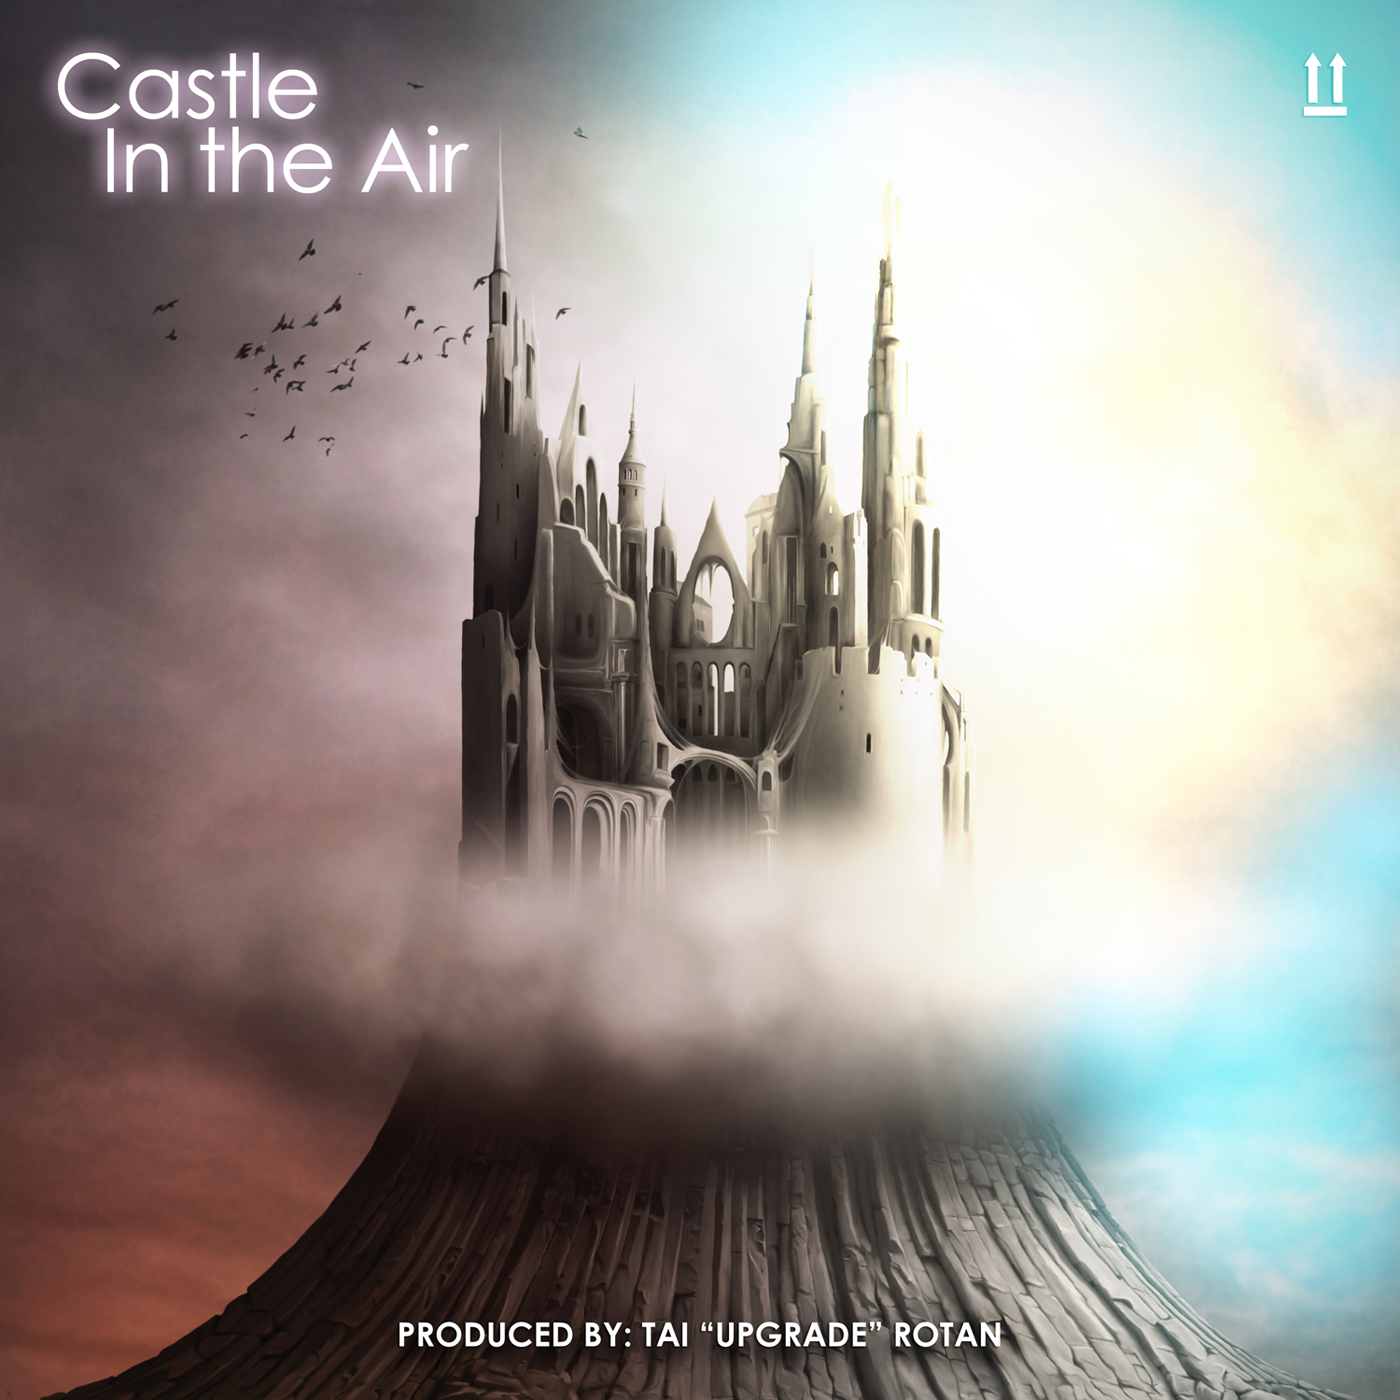 CASTLE IN THE AIR- Tai Upgrade Rotan